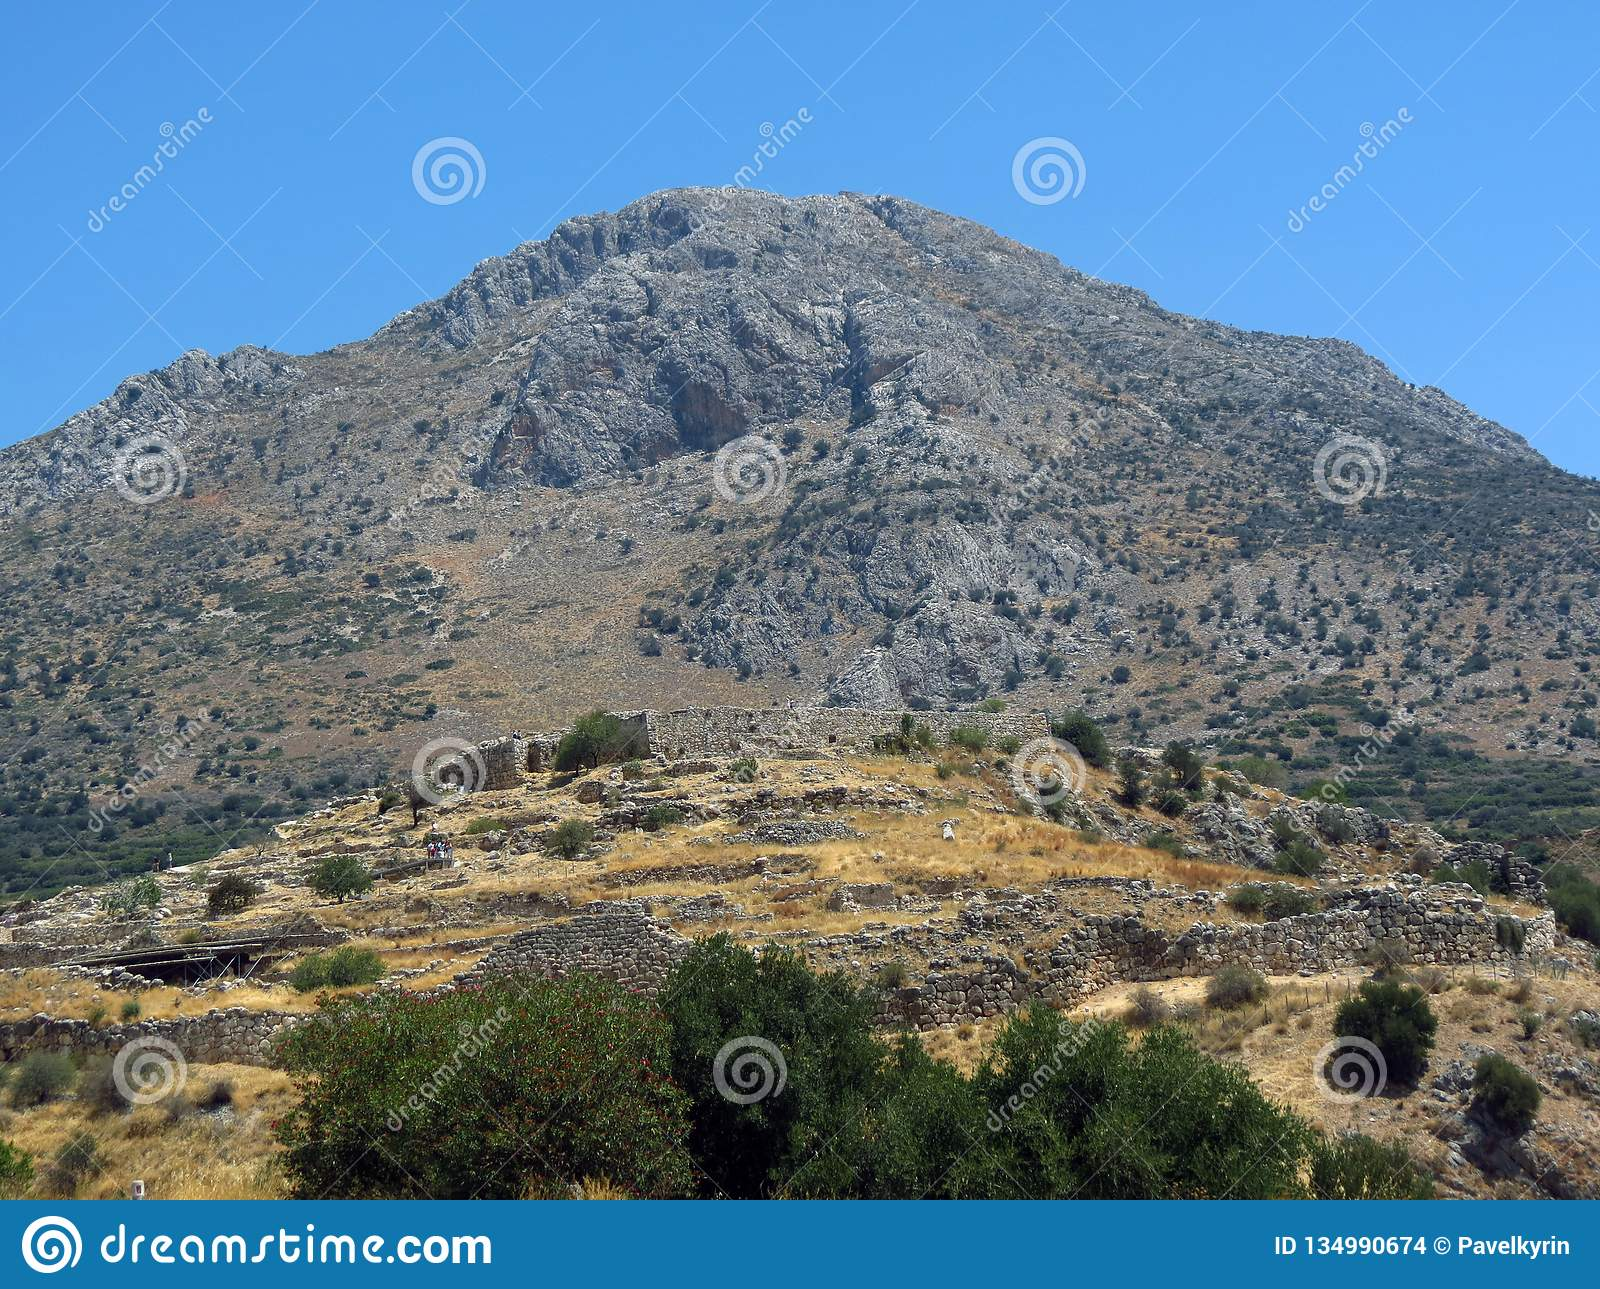 Mycenae, the tomb of the ancient ruler with the collapsed vault